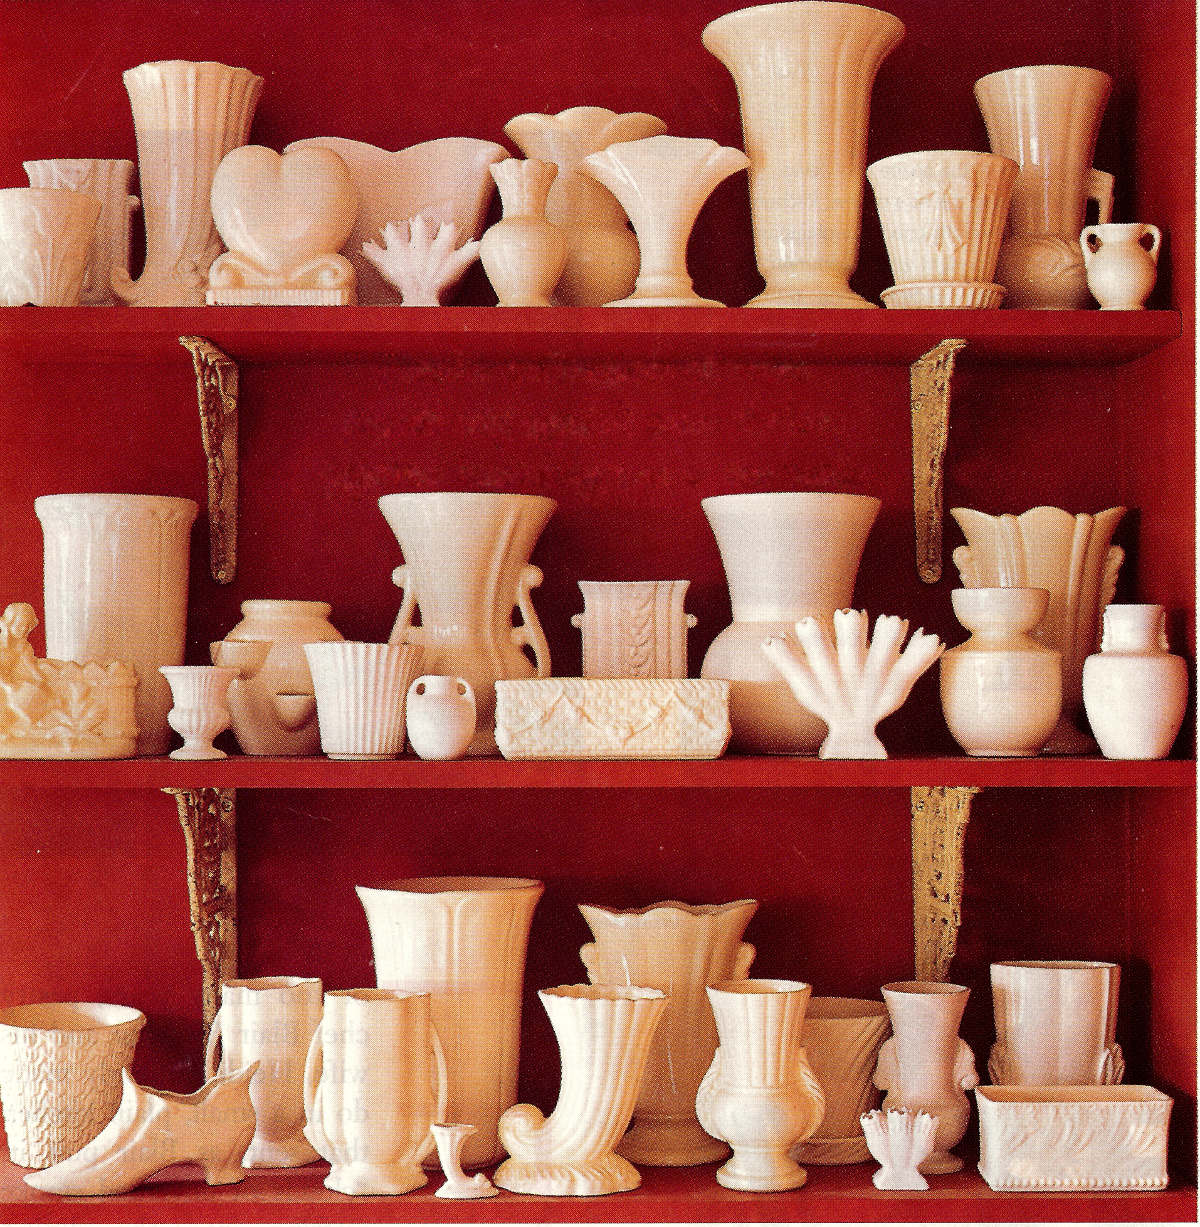 displaying ceramics - white pottery displayed against a dark red wall and shelves - homemag via atticmag